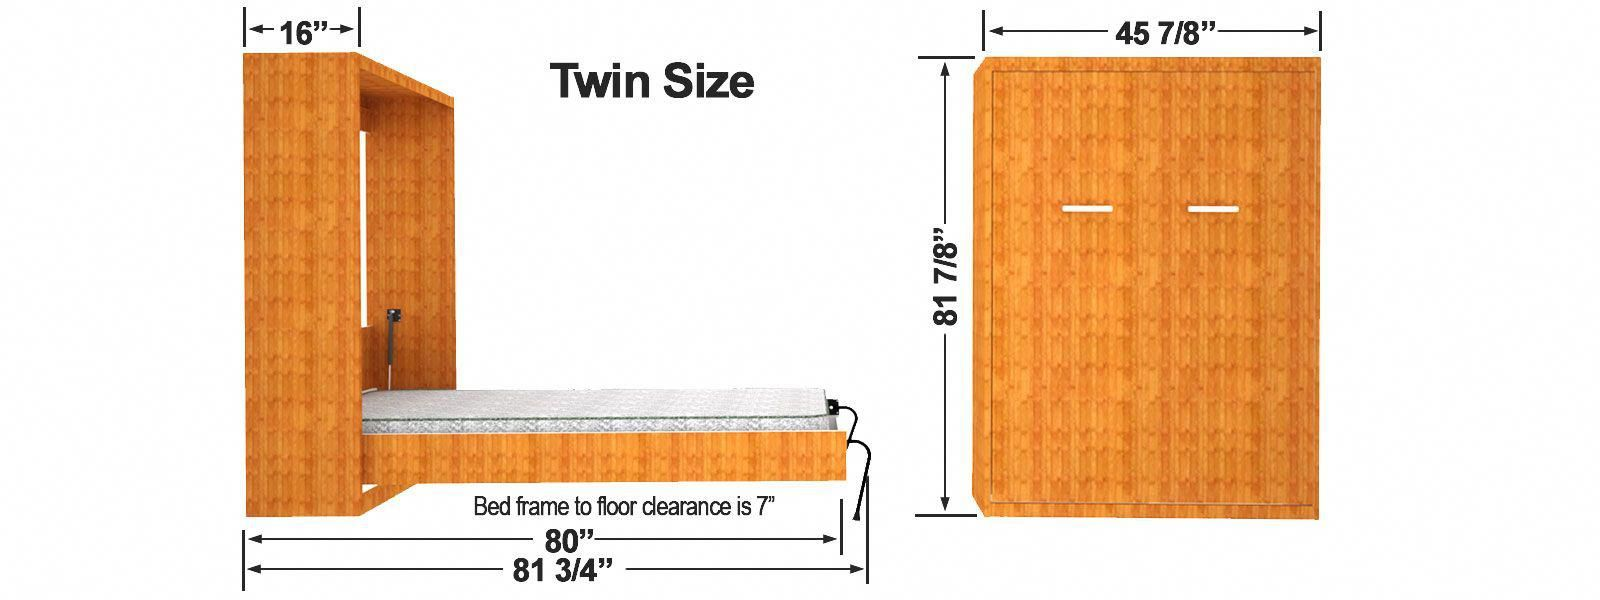 Twin Size Vertical Wall Bed Cabinet Dimensions Murphybedsdiytwin